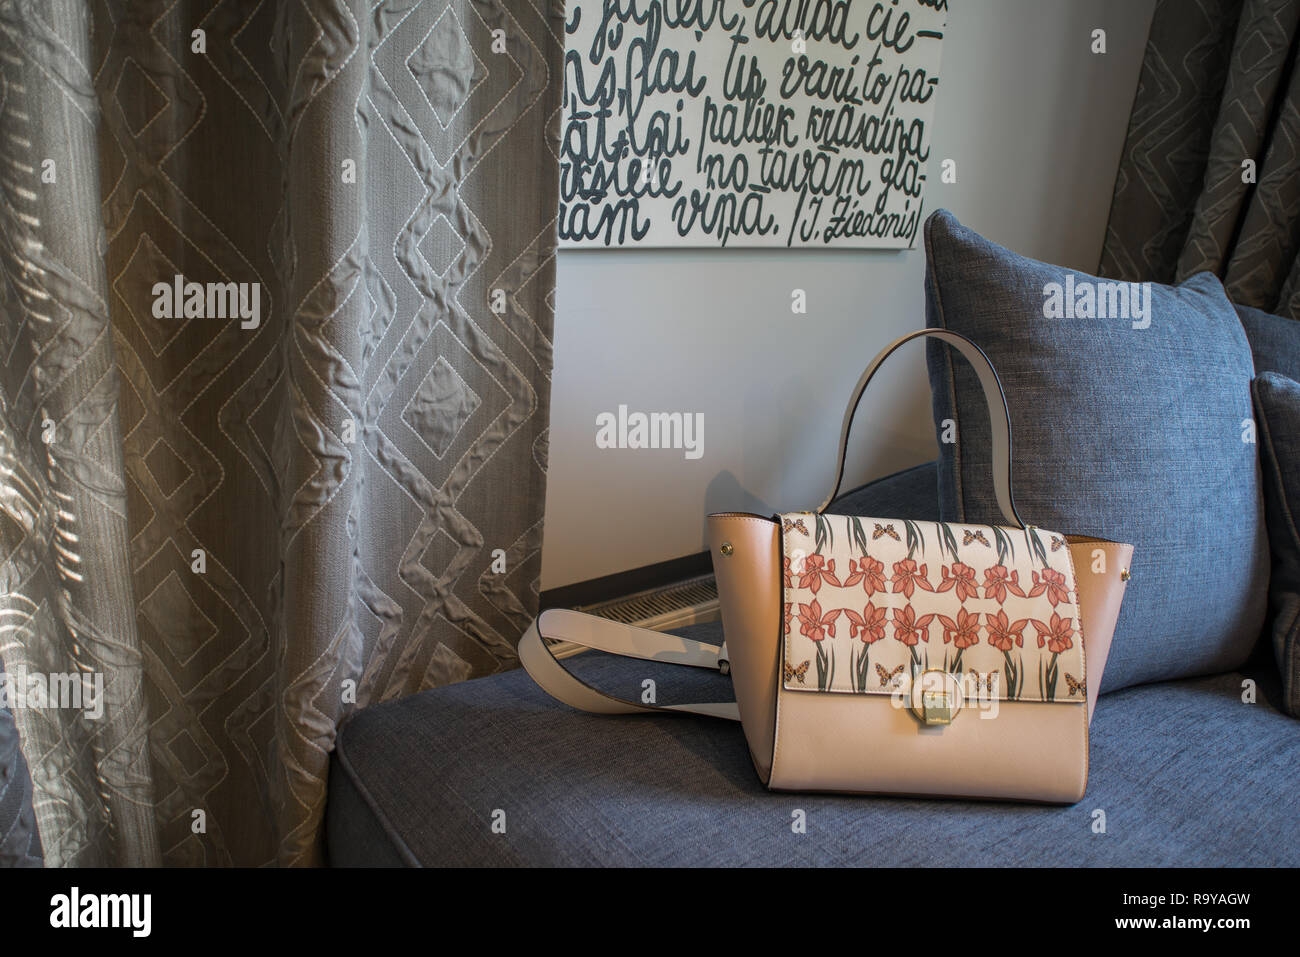 Interior decor, bag and sofa. - Stock Image